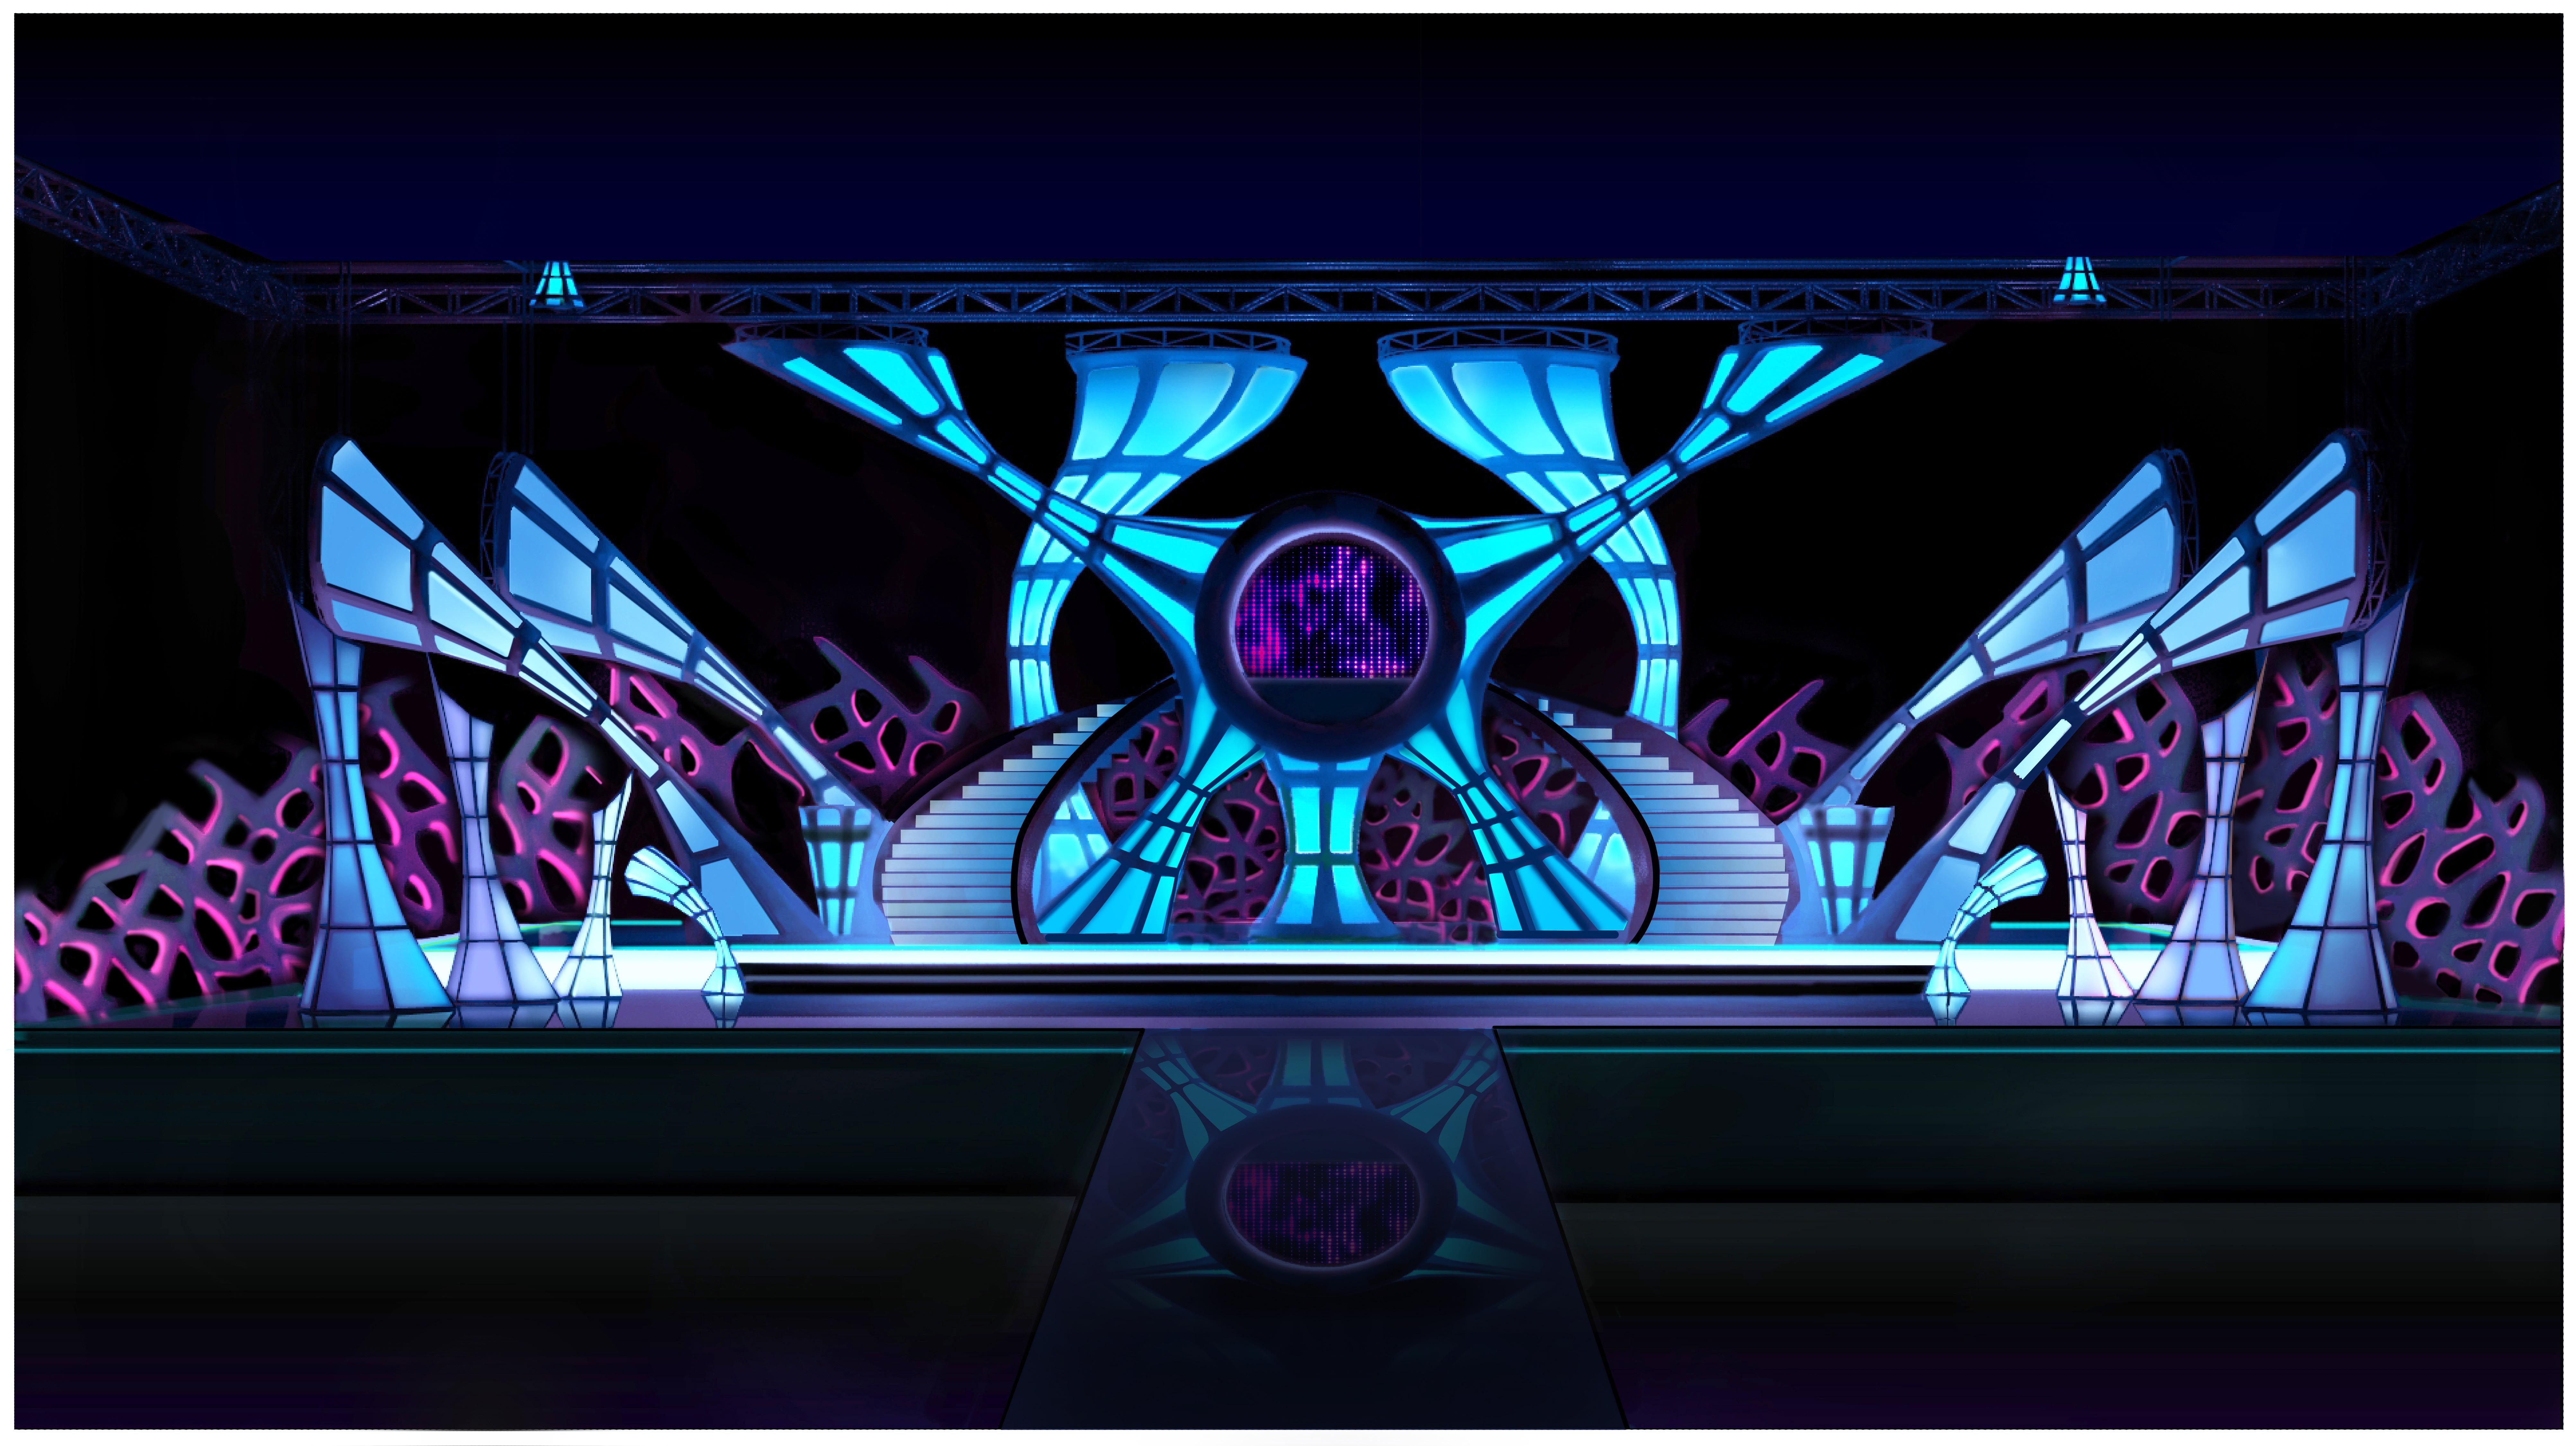 Concert Stage Design Ideas microsoft stage design neutralart stage design pinterest ideas stage design and design Stage Design